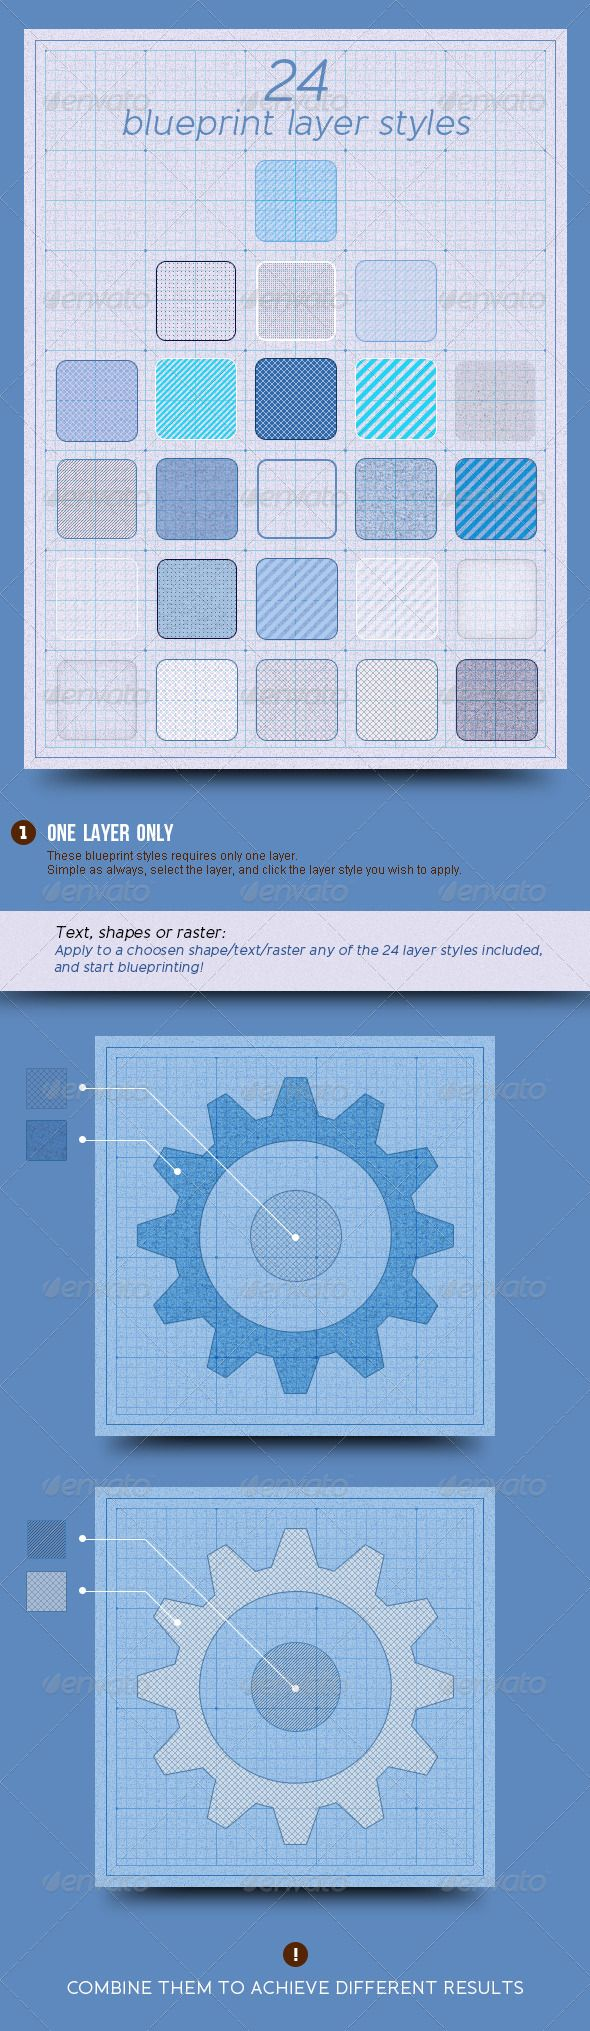 21 best blueprint backgrounds images on pinterest graphics 24 blueprint layer styles malvernweather Gallery